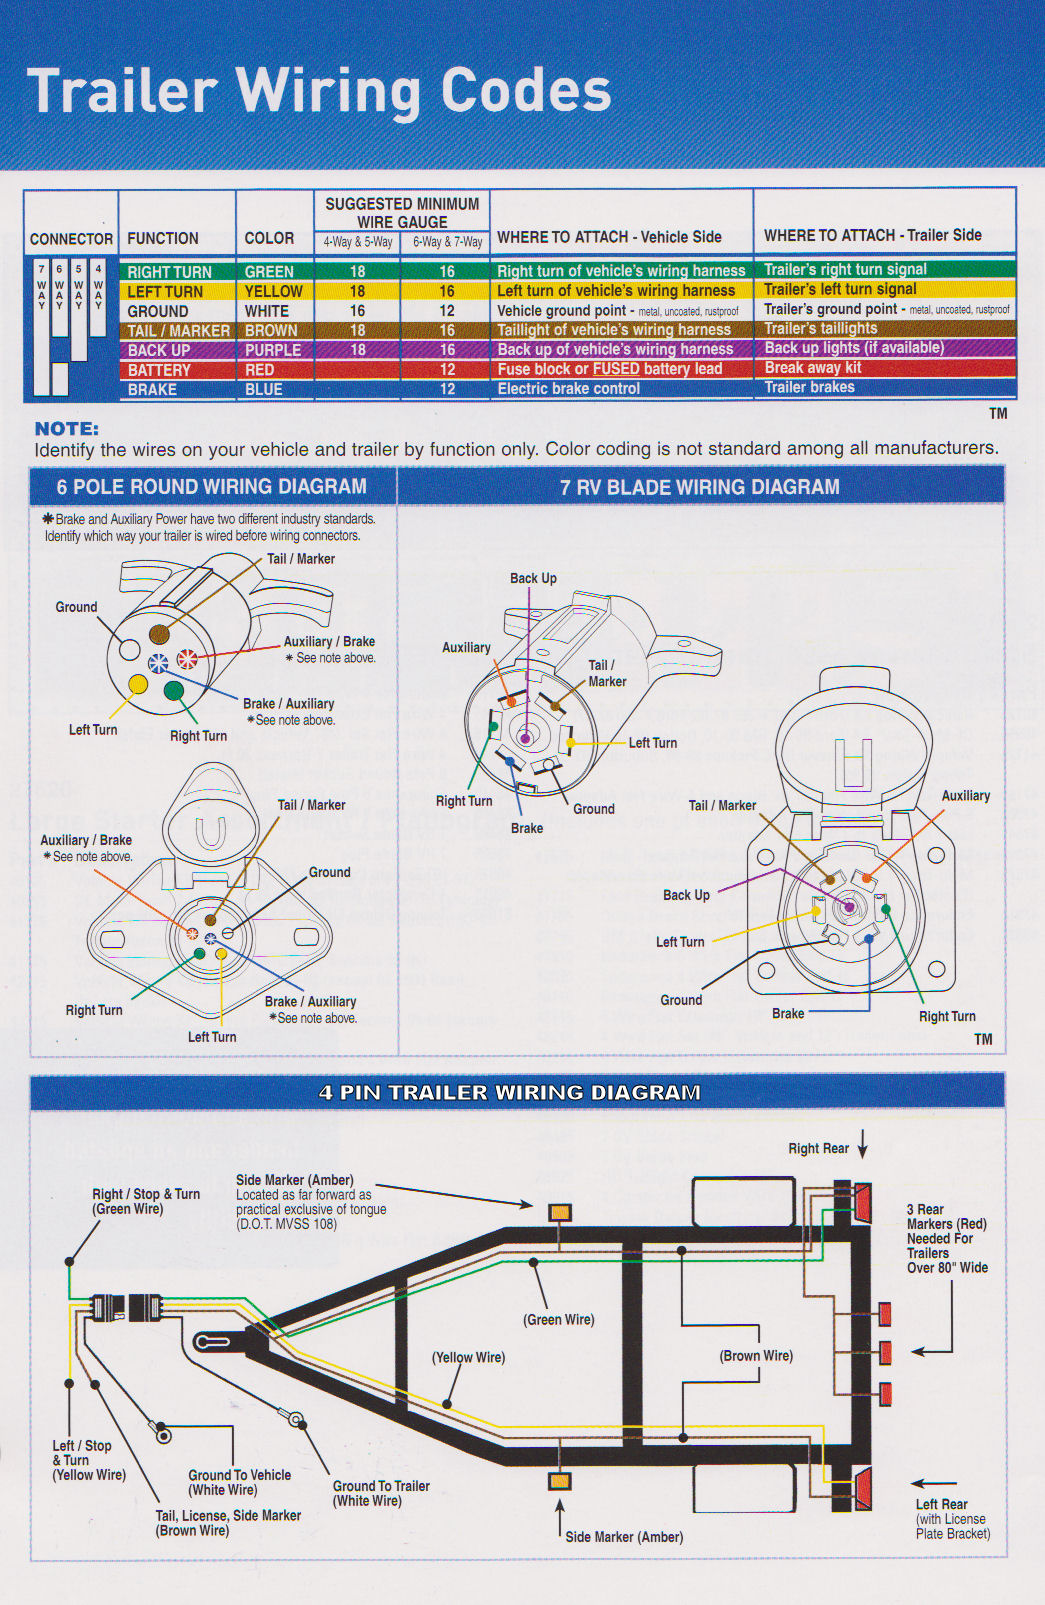 Trailer Wiring Diagram trailer wiring diagram we are the trailer pros! gooseneck trailer wiring diagram at gsmportal.co